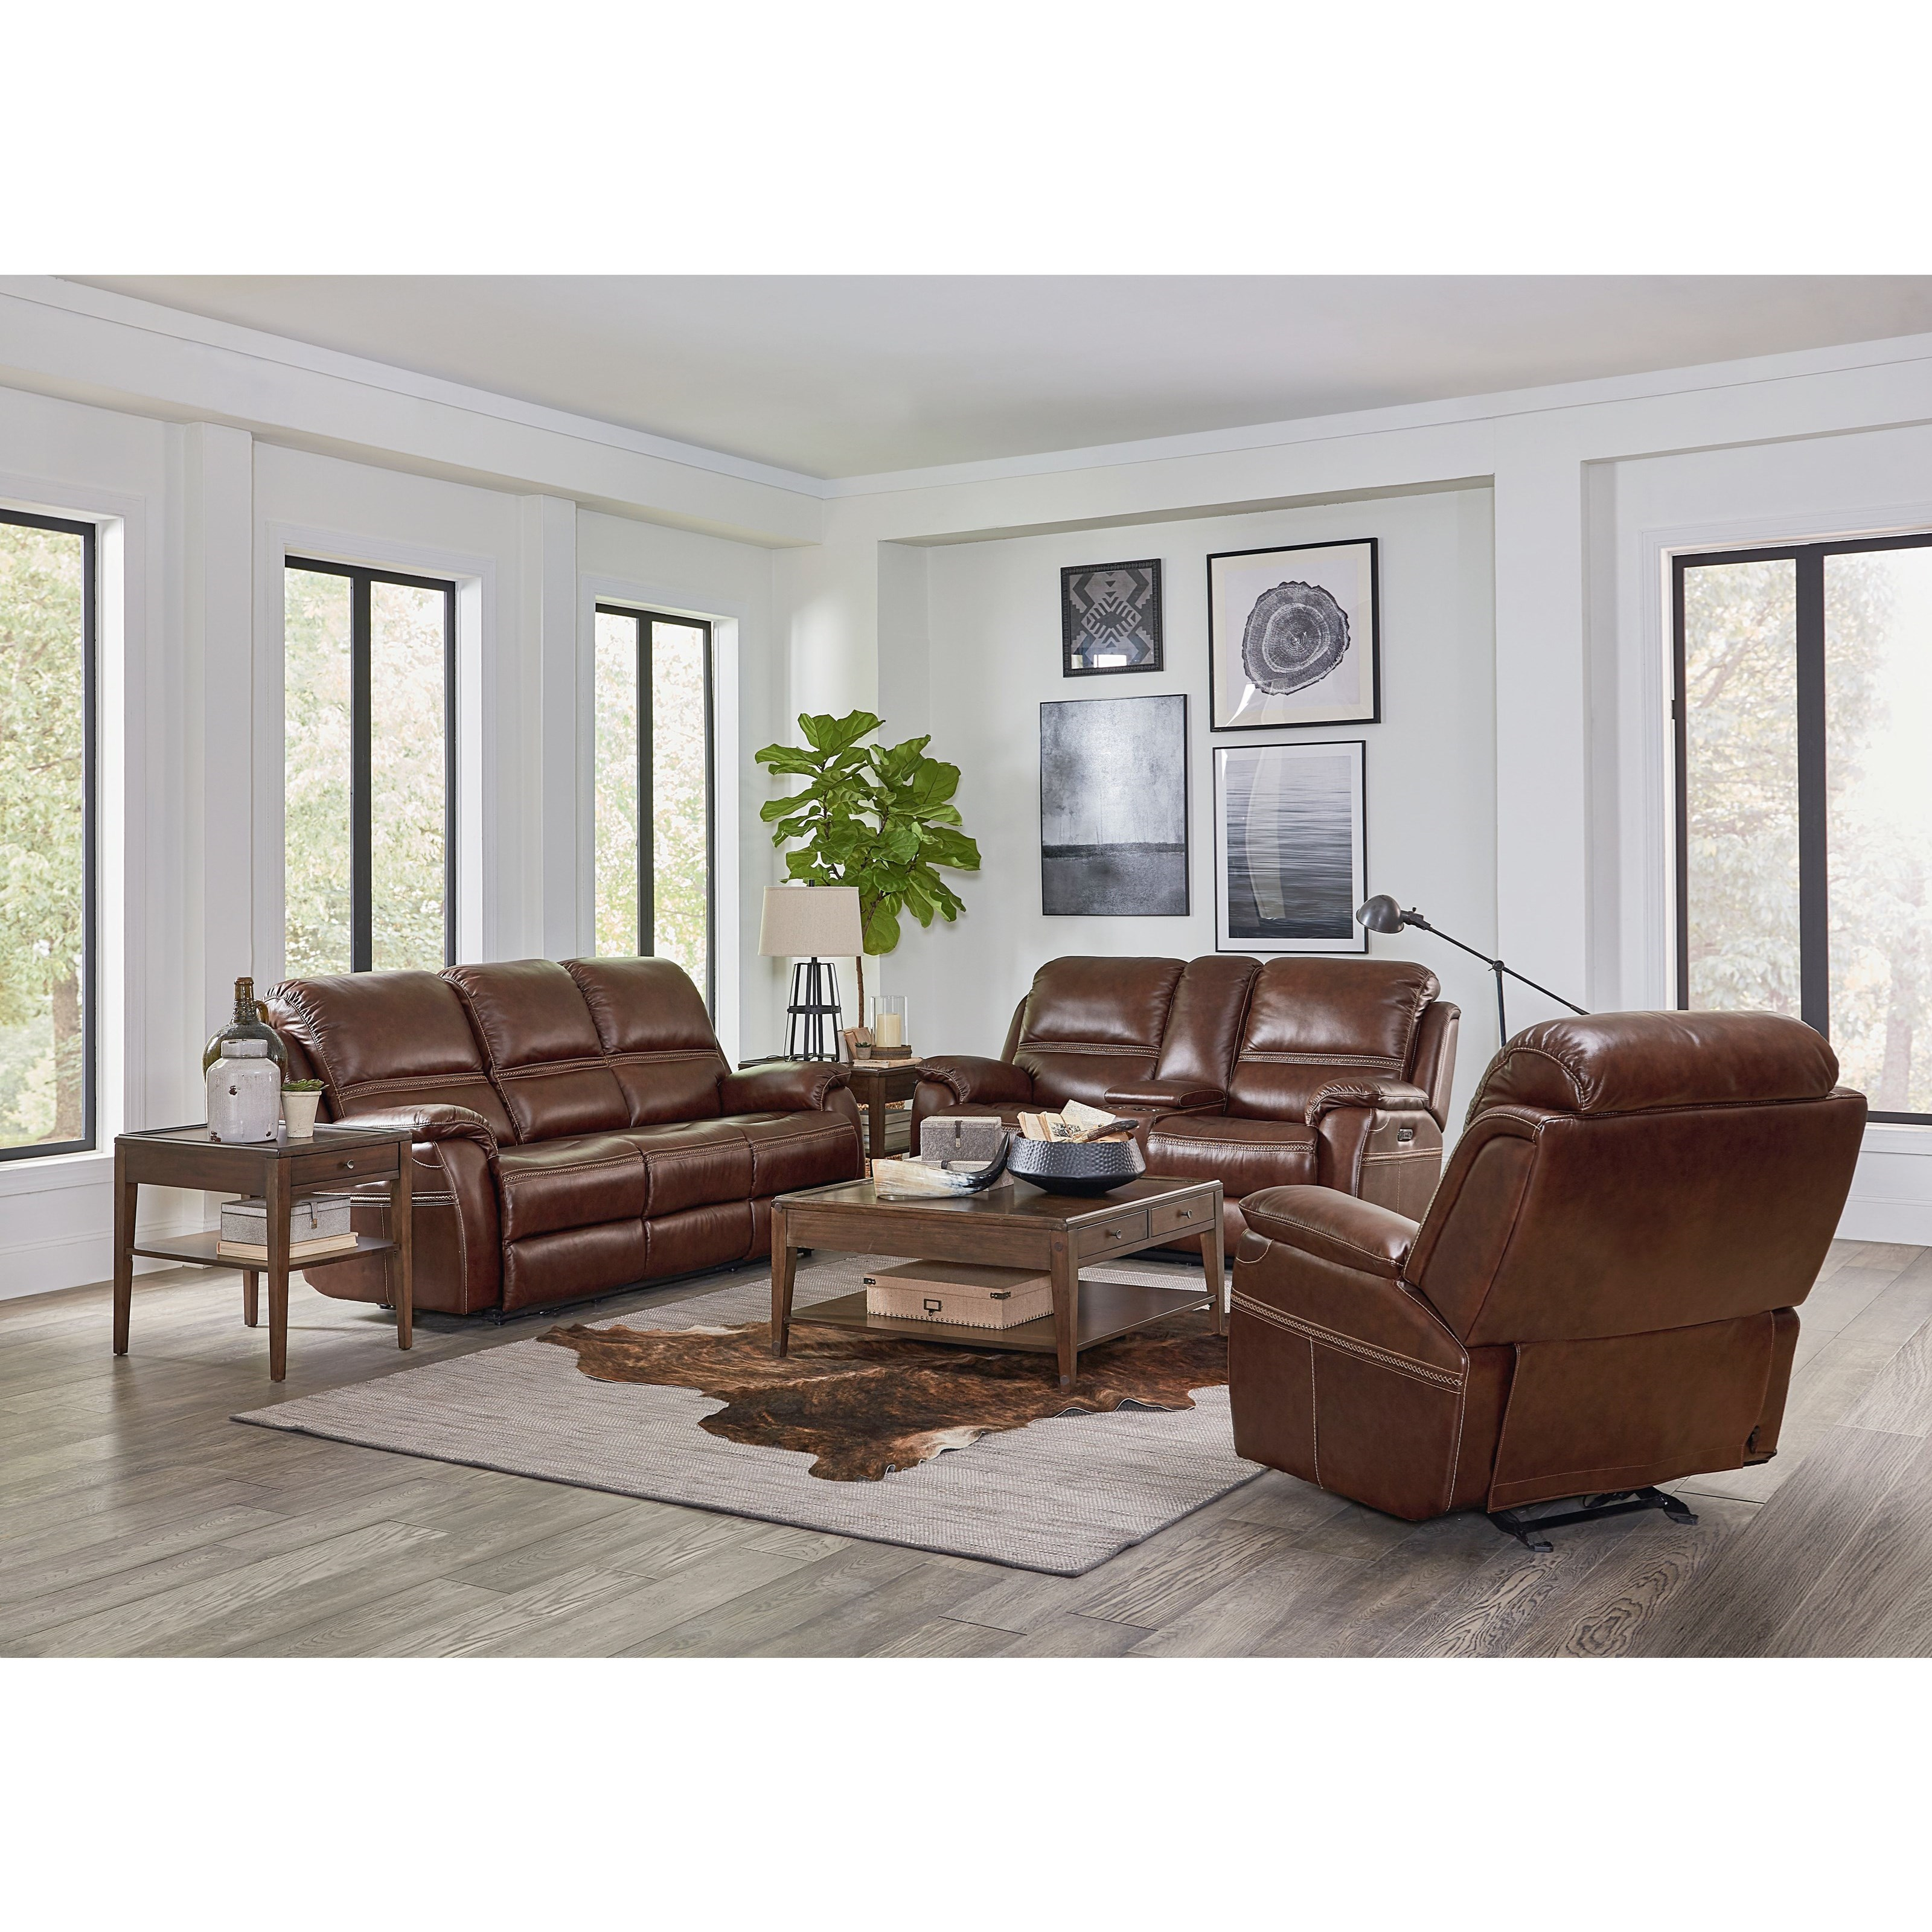 Williams - Club Level by Bassett Power Reclining Living Room Group by Bassett at Wilcox Furniture